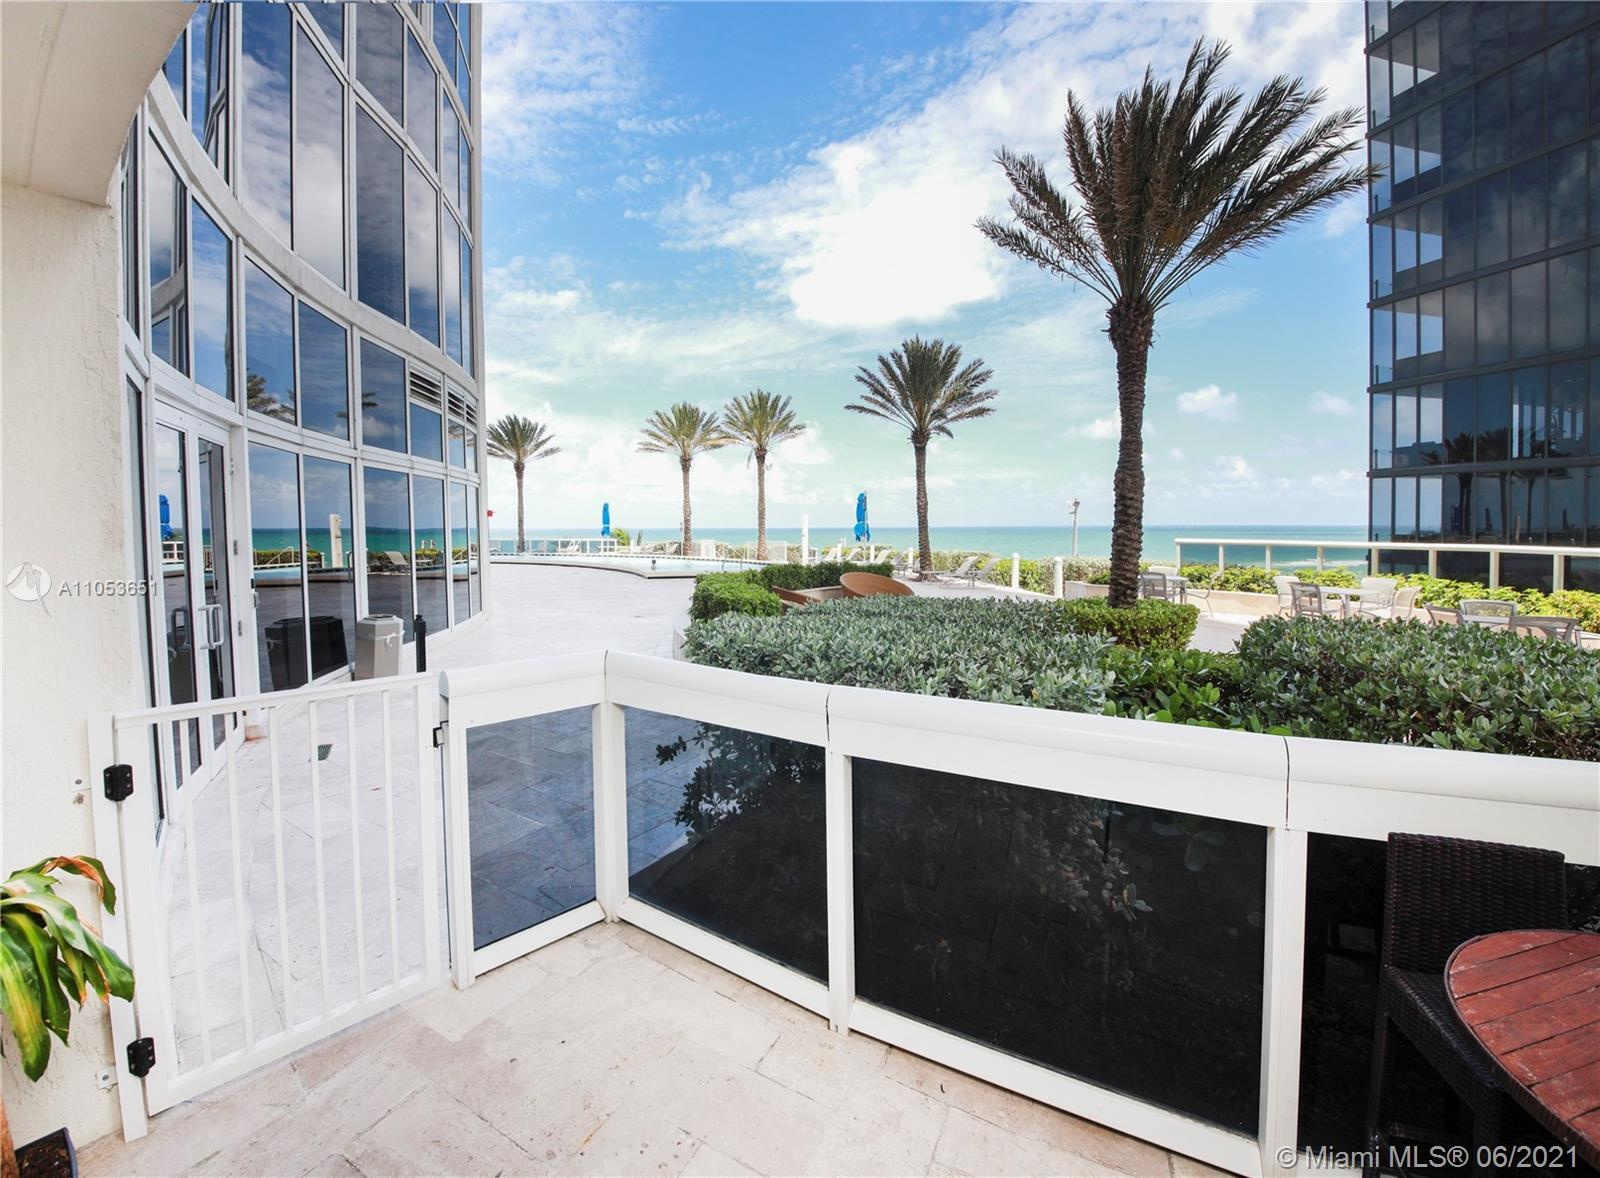 Beautiful Lanai Unit! One of the most spectacular units in the building. Enjoy waking up pool side a